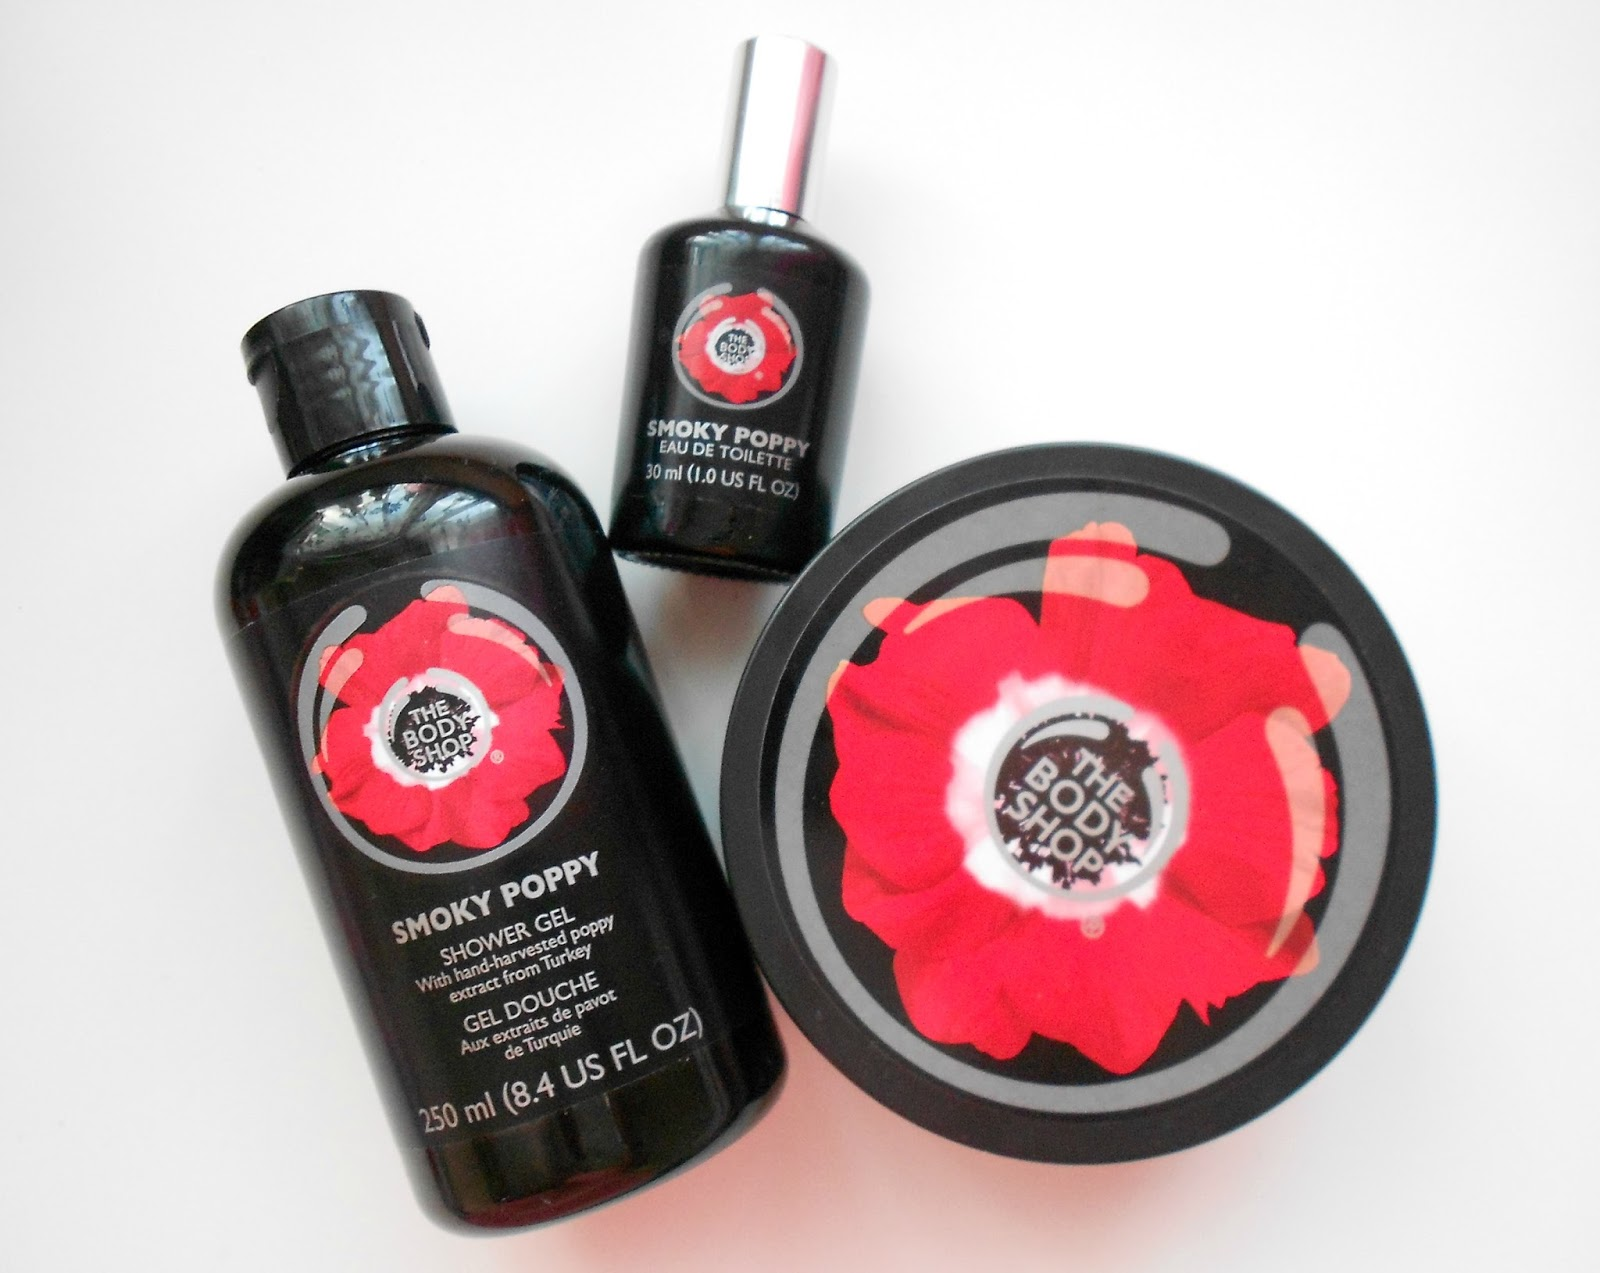 smoky poppy body shop showergel butter perfume review